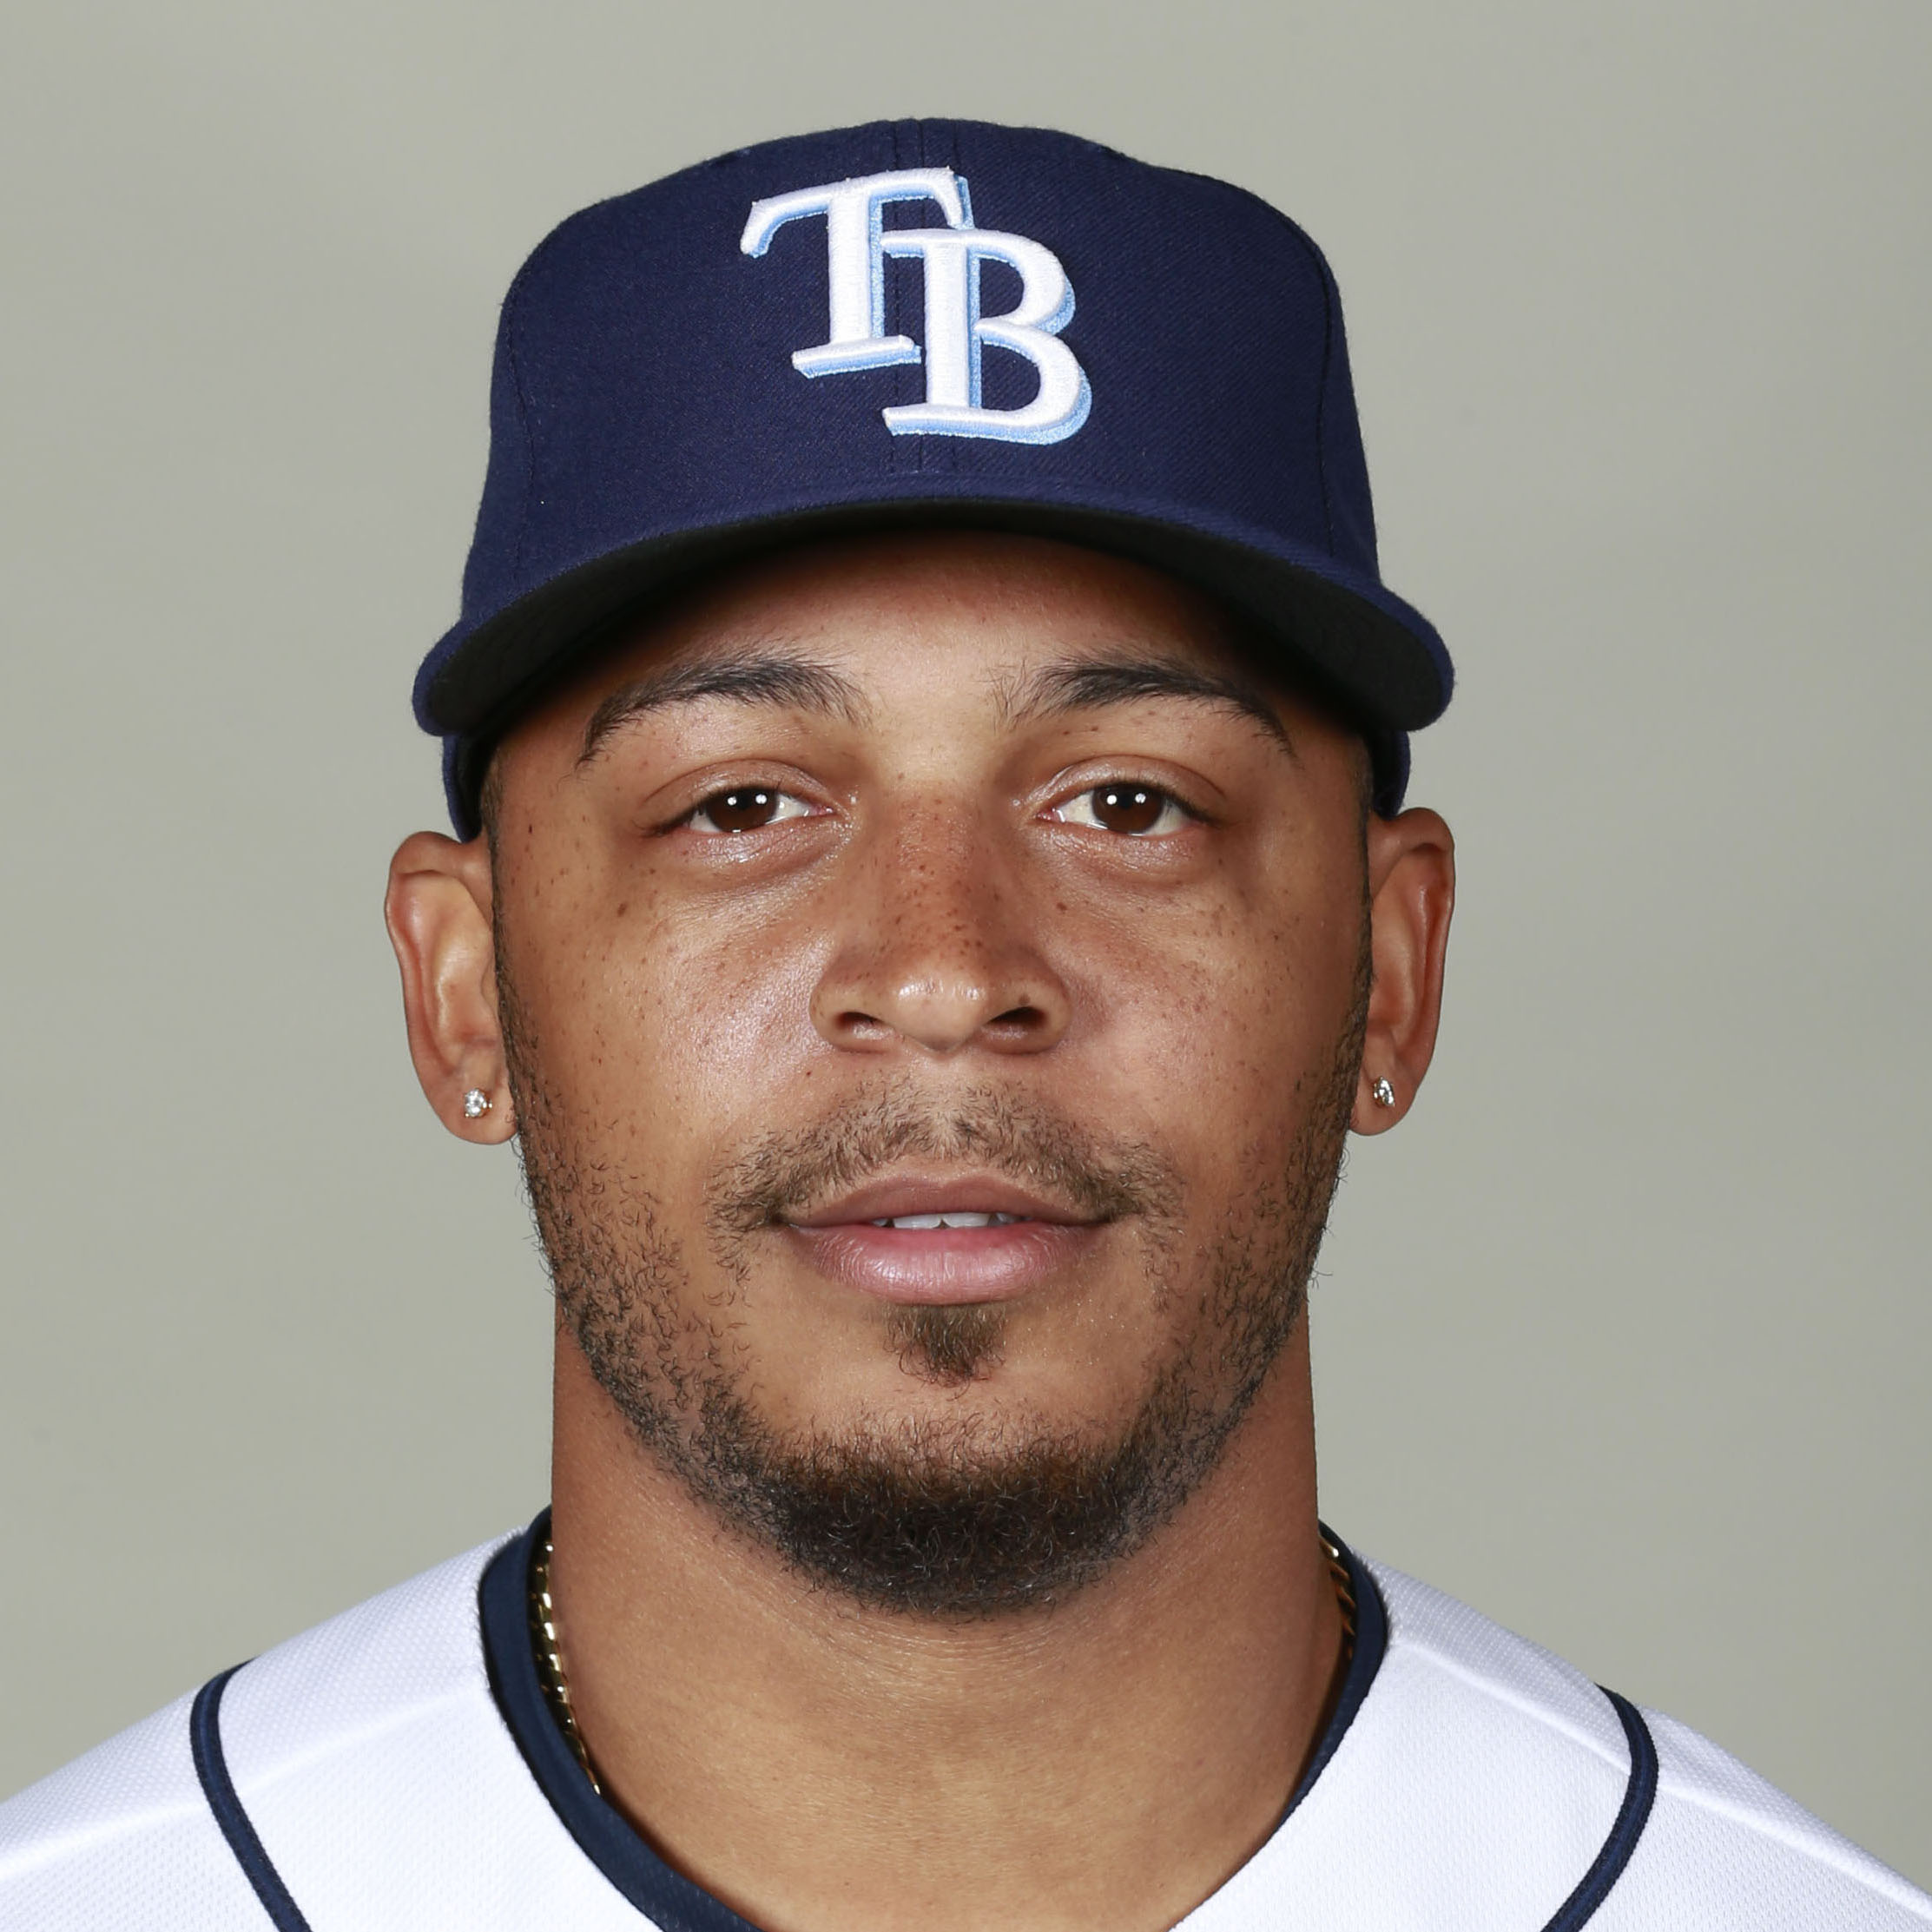 Desmond Jennings Headshot